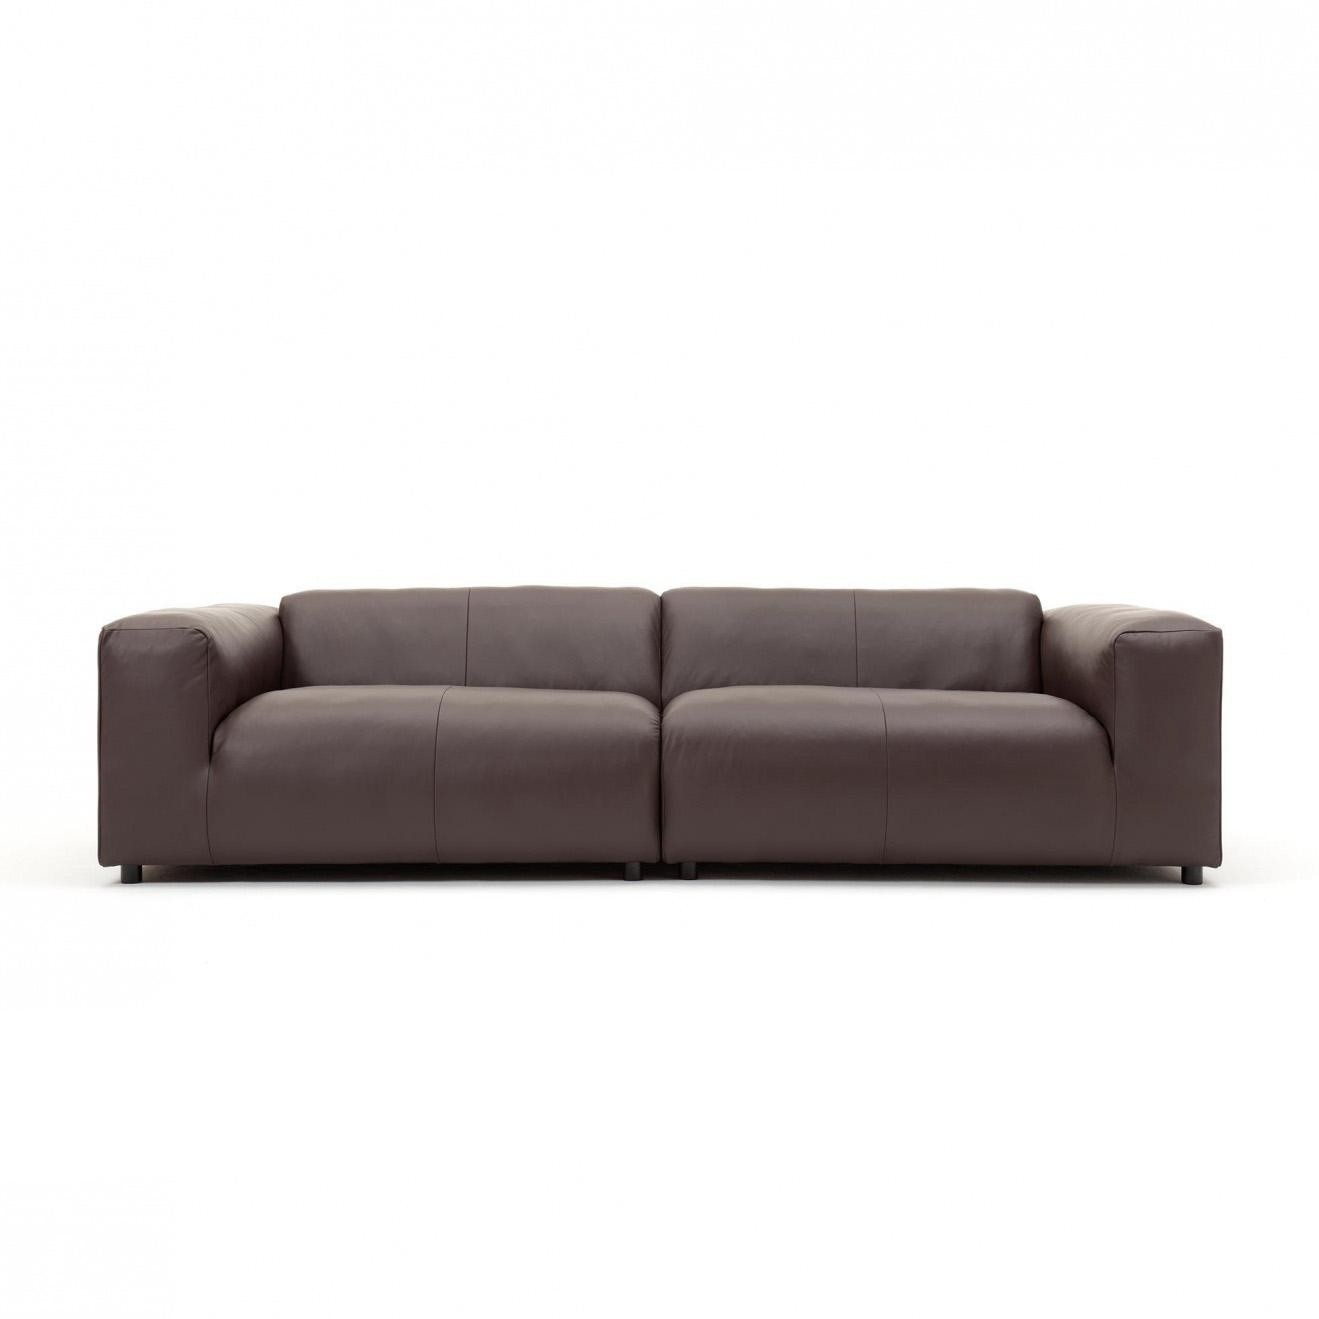 Rolf Benz Couch Freistil 187 3 Seater Leather Sofa